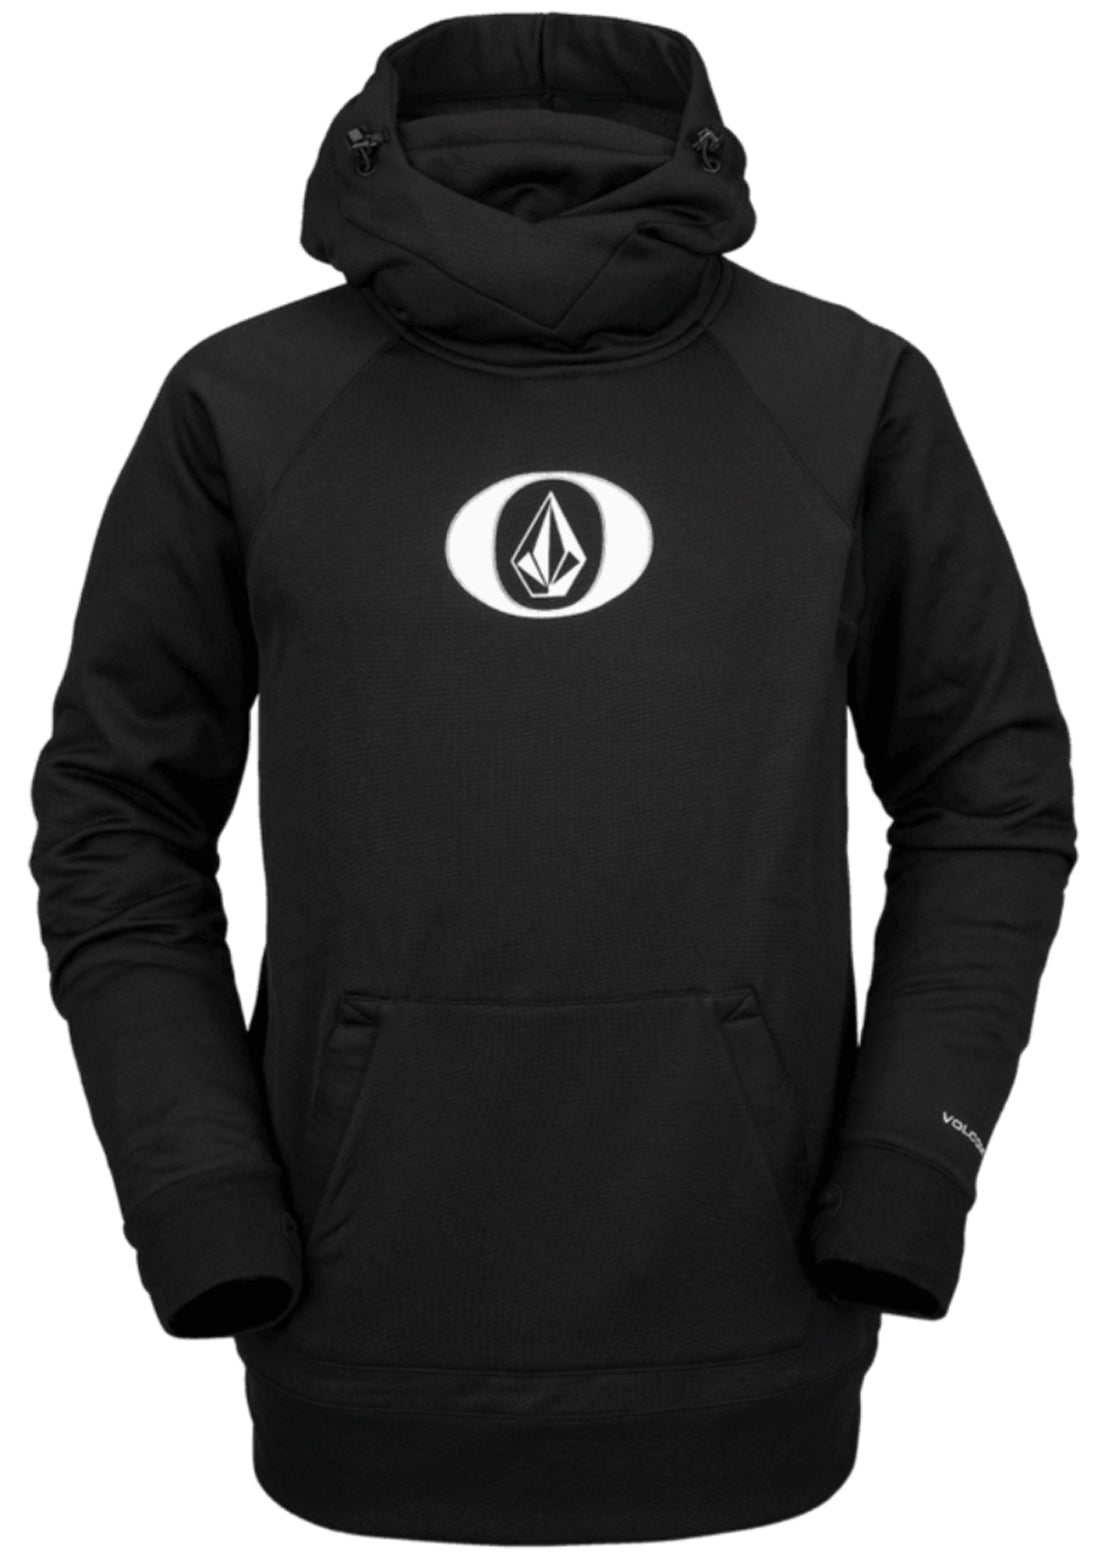 Volcom Men's Hydro Riding Hoodie Black